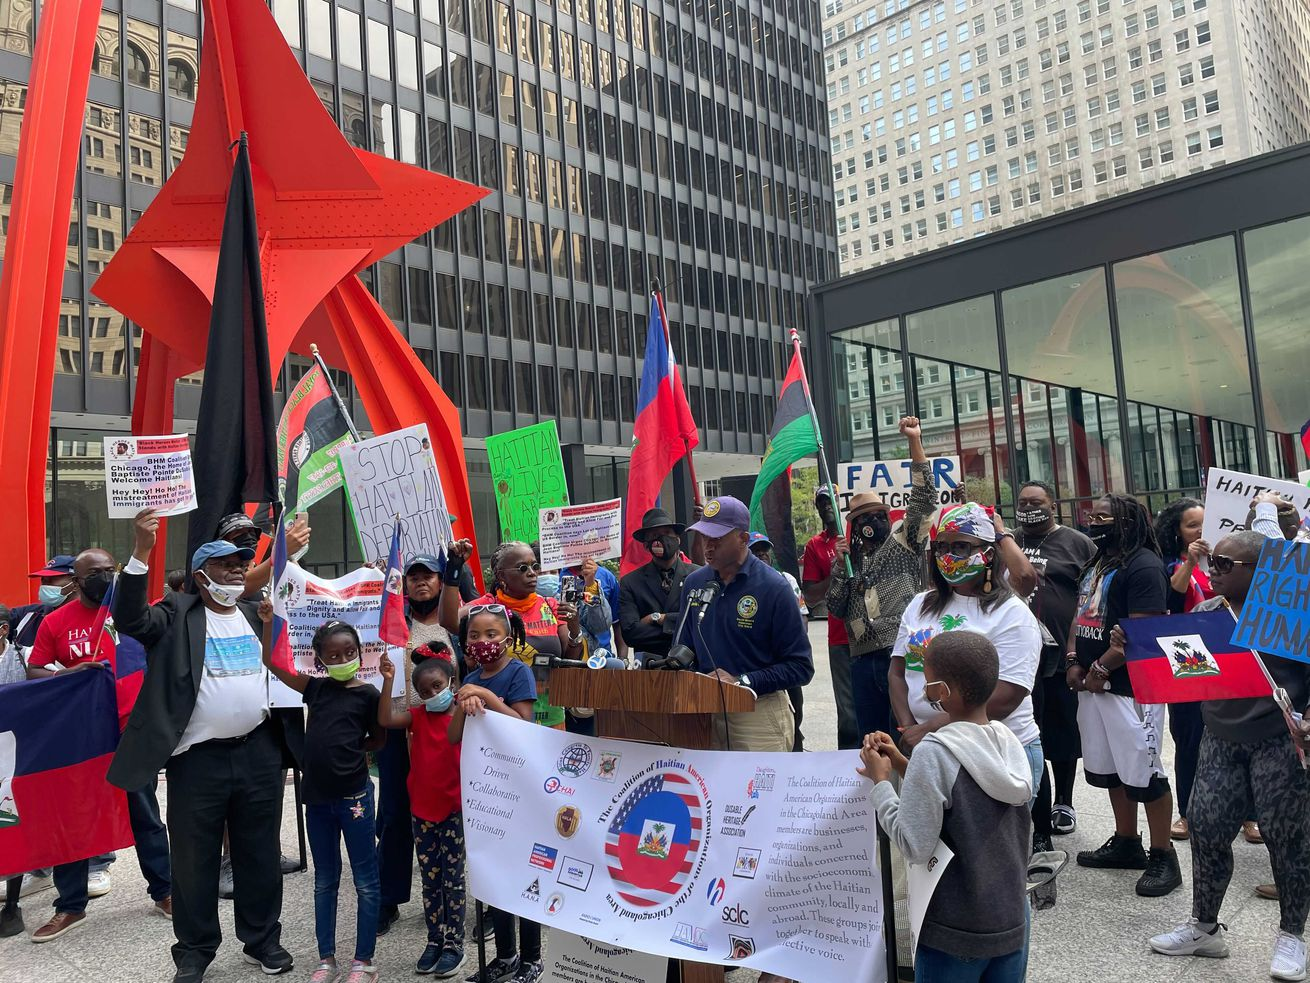 Chicagoans stand in solidarity with Haitian migrants mistreated at Texas border